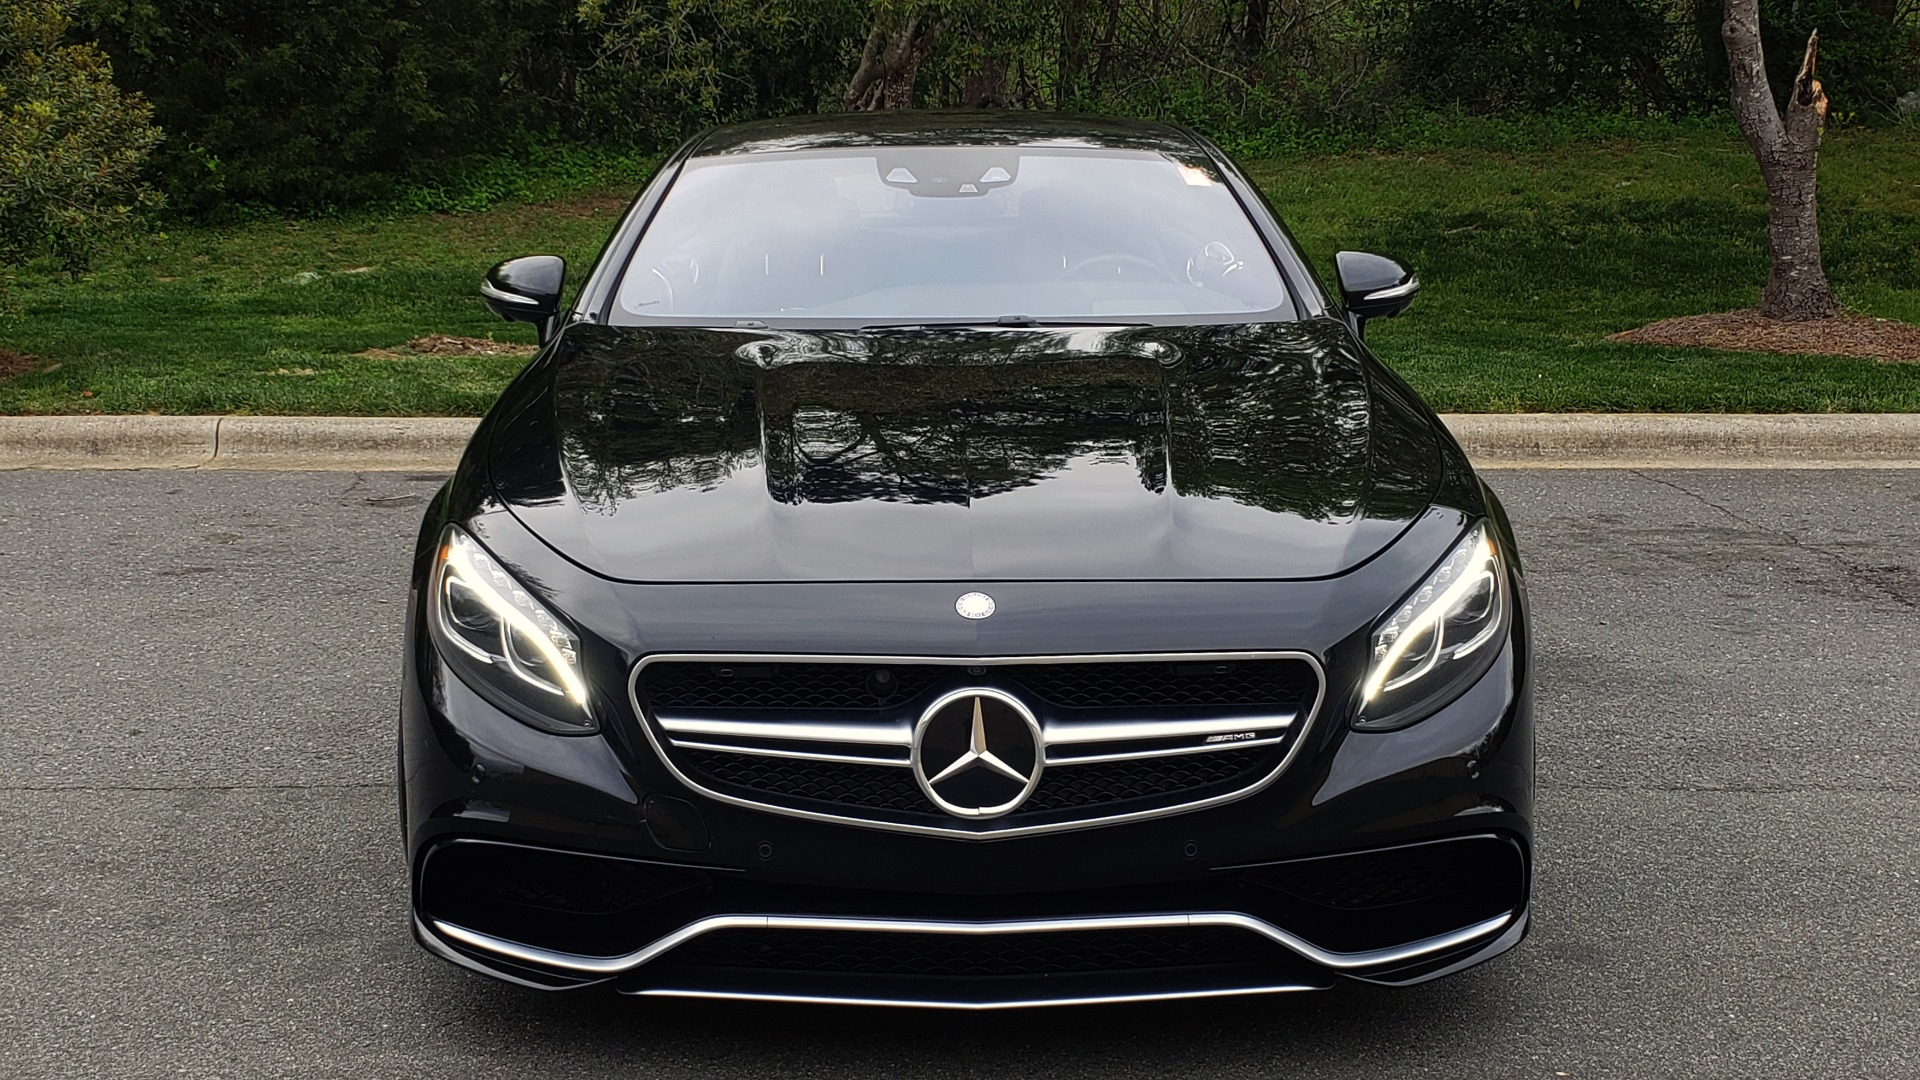 Used 2015 Mercedes-Benz S-CLASS S 63 AMG 4MATIC / DRVR ASST / NIGHT VIEW ASST PLUS / MAGIC SKY for sale Sold at Formula Imports in Charlotte NC 28227 29